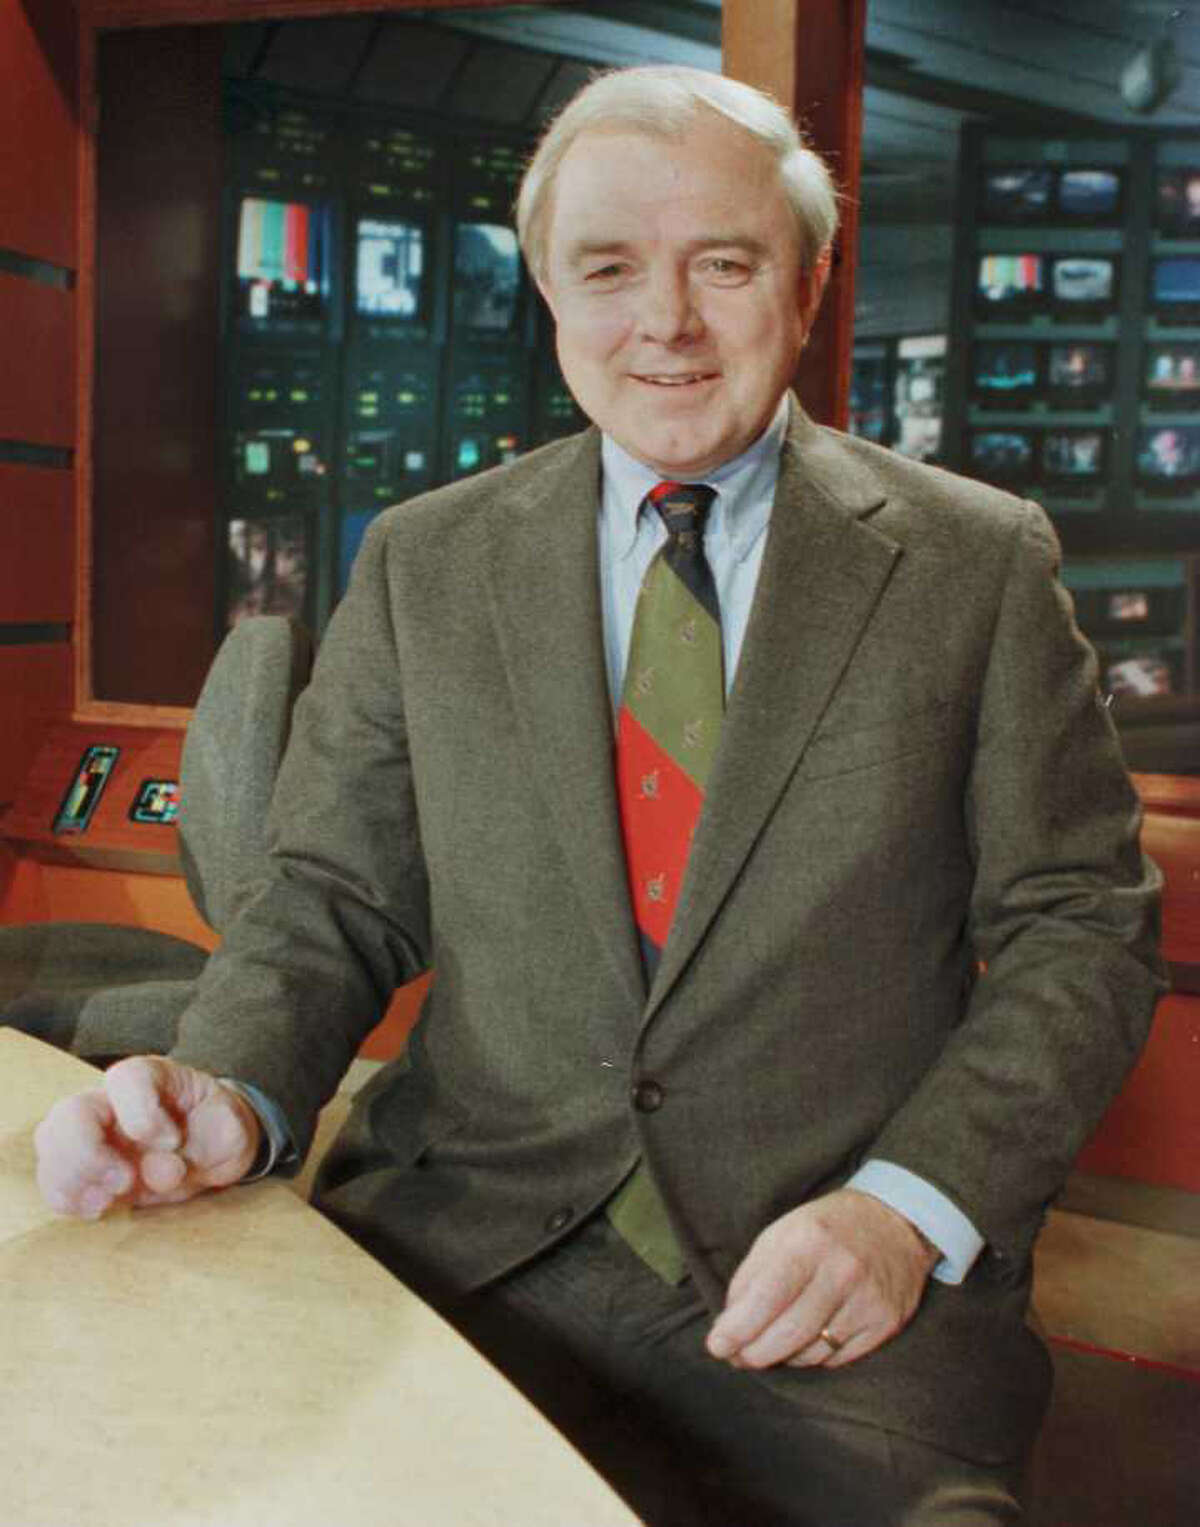 Ed Dague, pictured in December 1995, at the WNYT Channel 13 news studio in Menands. He was considered a voice of authority with a non-nonsense style. (File photo)